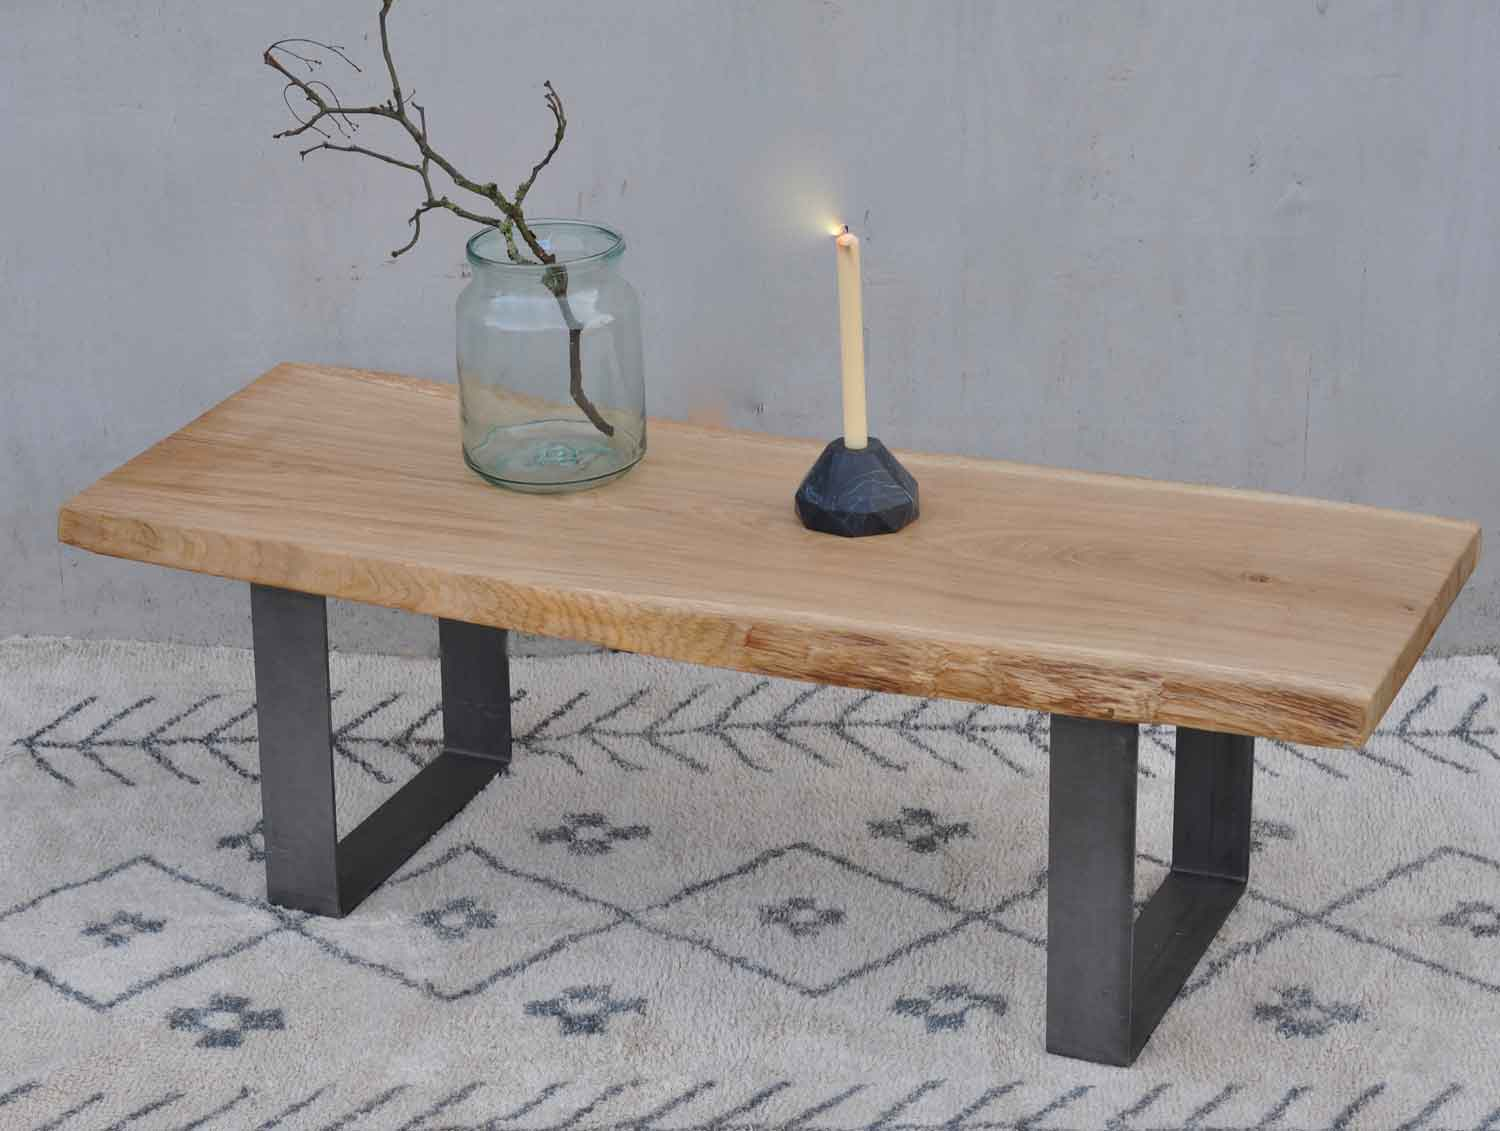 Live Edge Solid Oak Coffee Table With Industrial Steel Legs